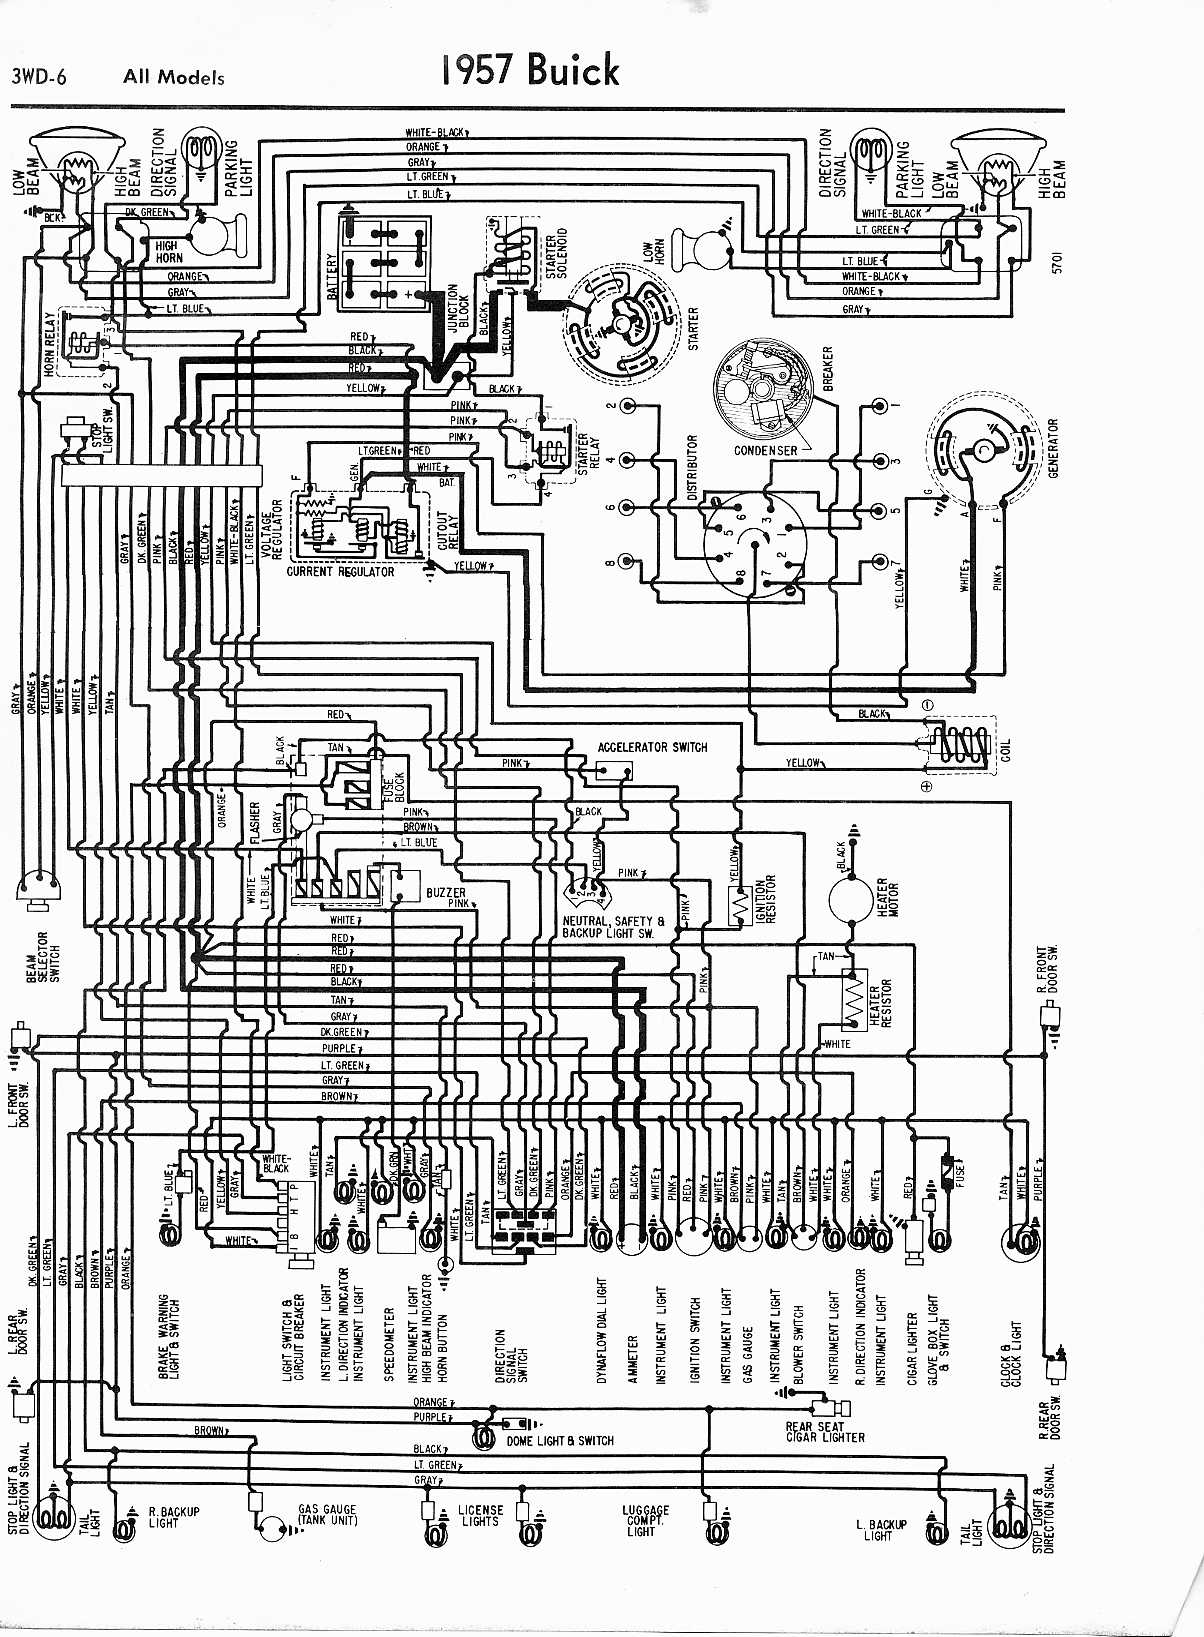 Buick North Star Engine Diagram Wiring Library 1972 Cadillac Eldorado Diagrams 1957 1965 Rh Oldcarmanualproject Com